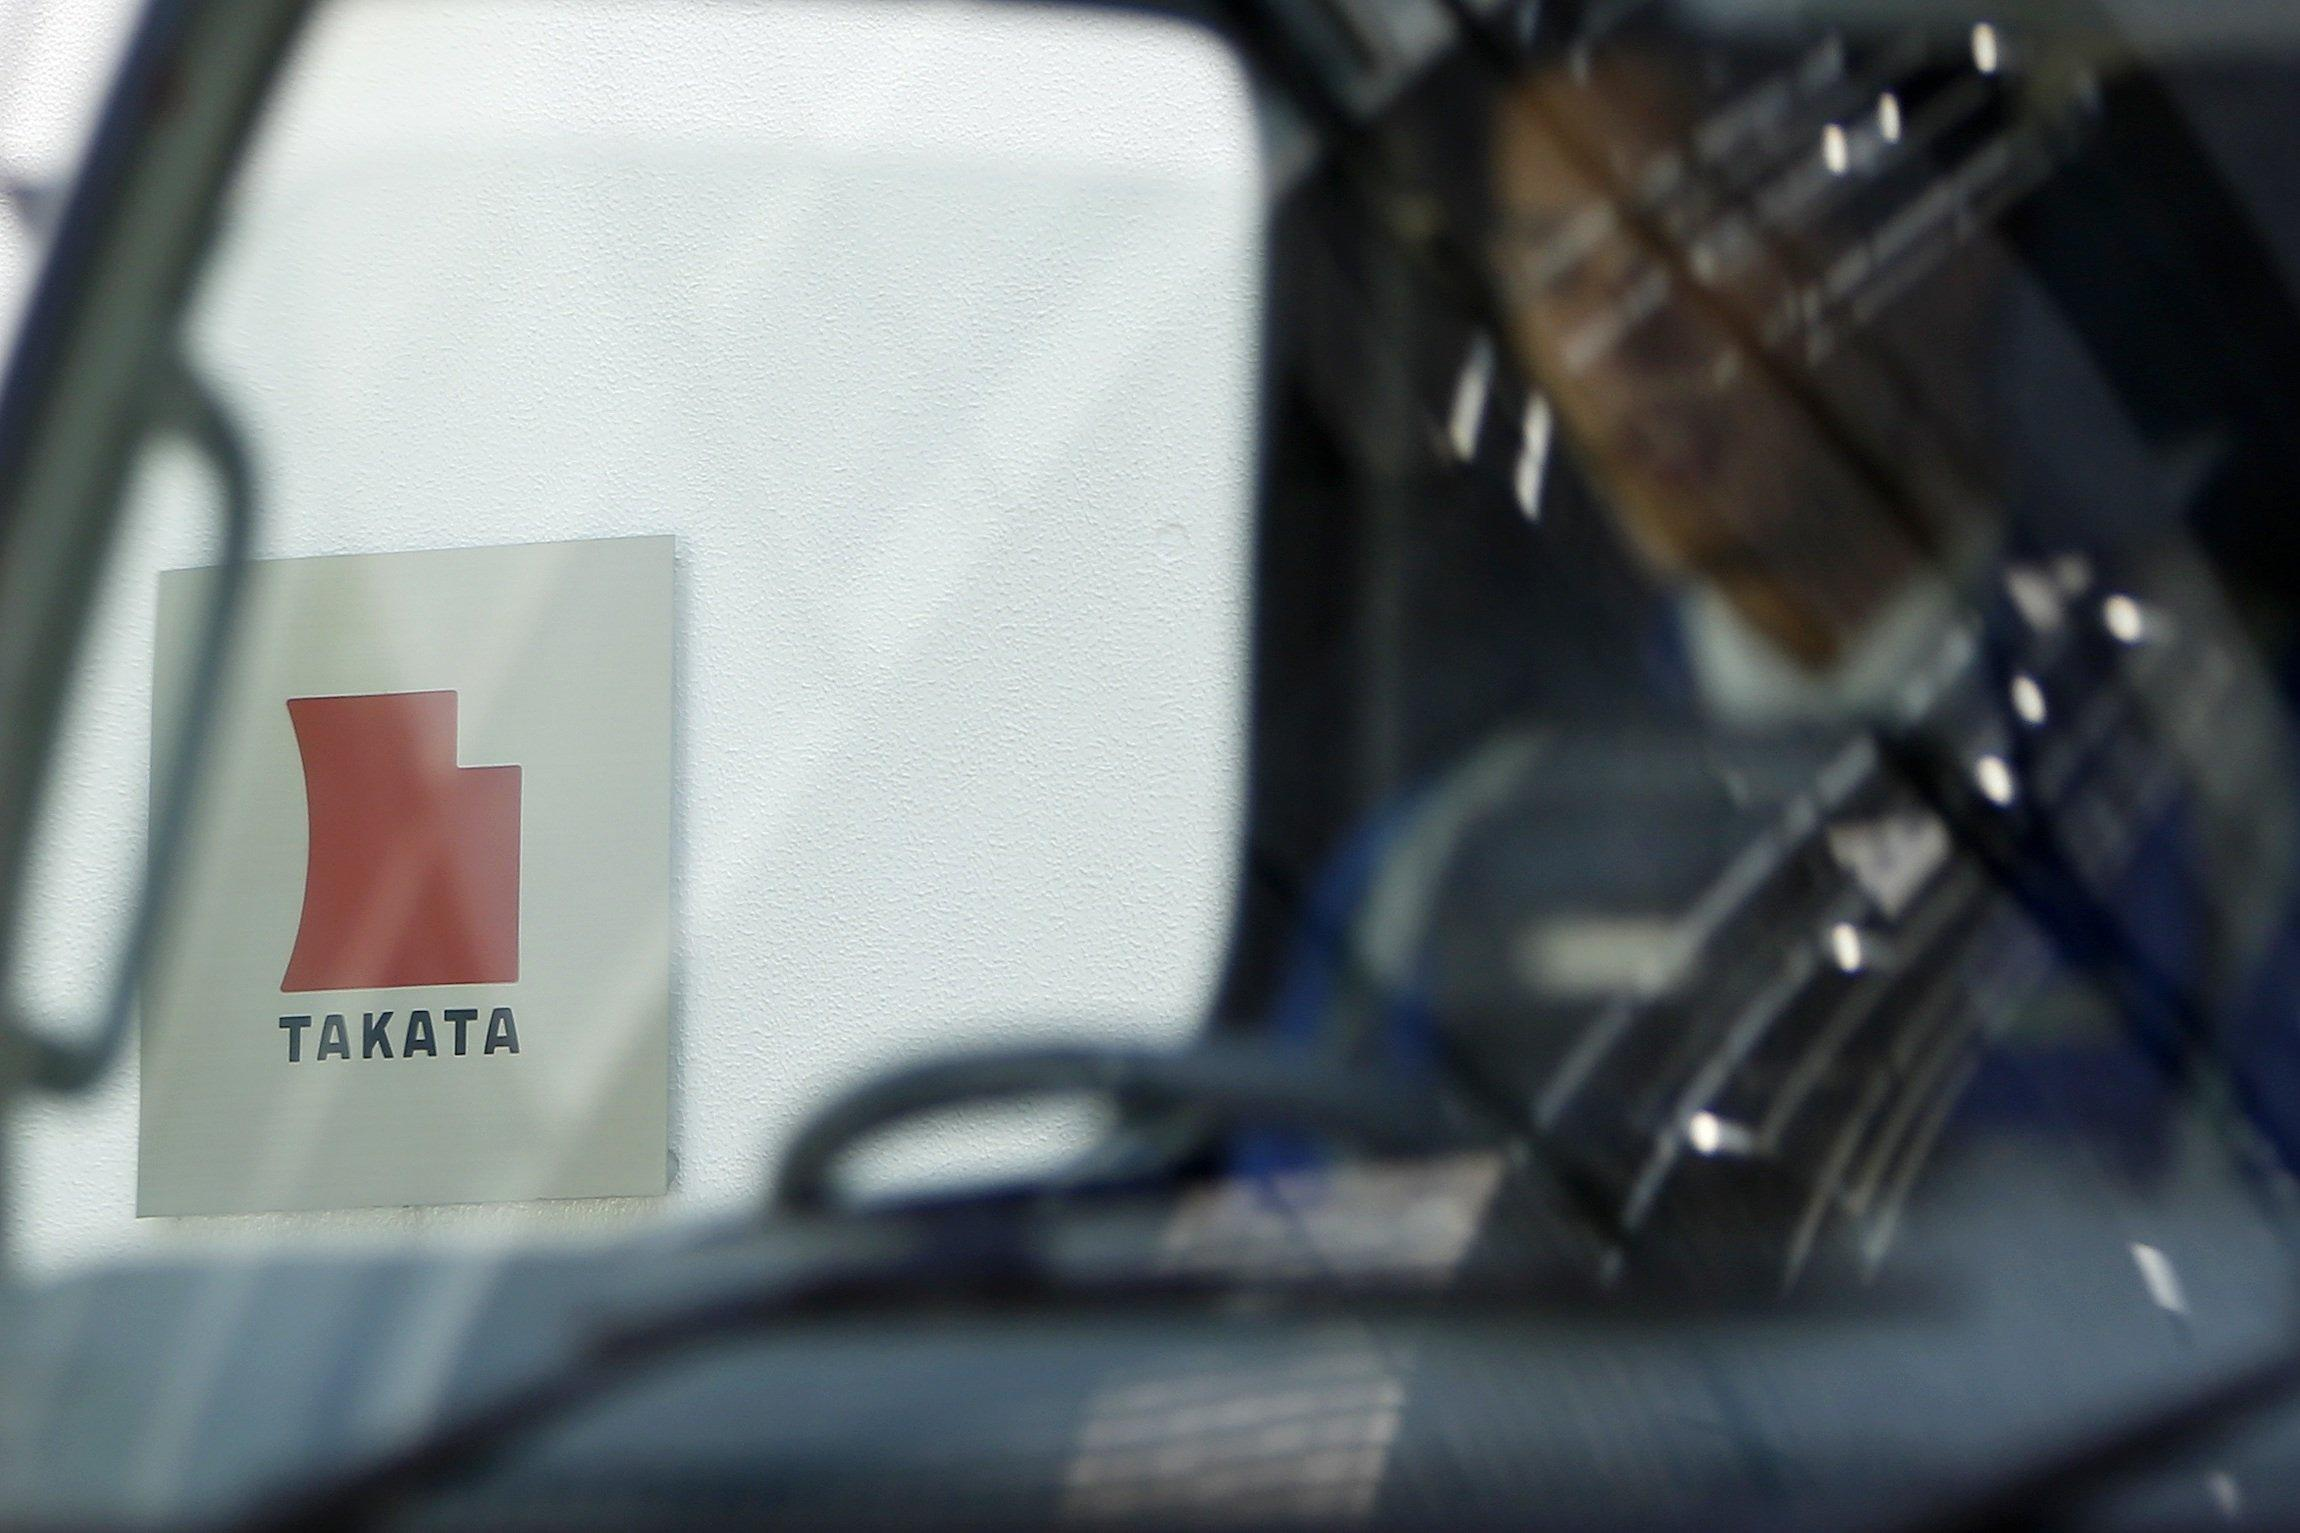 Faulty airbags made by Japan's Takata Corp. have forced the recall of 10 million vehicles by eight different manufacturers.